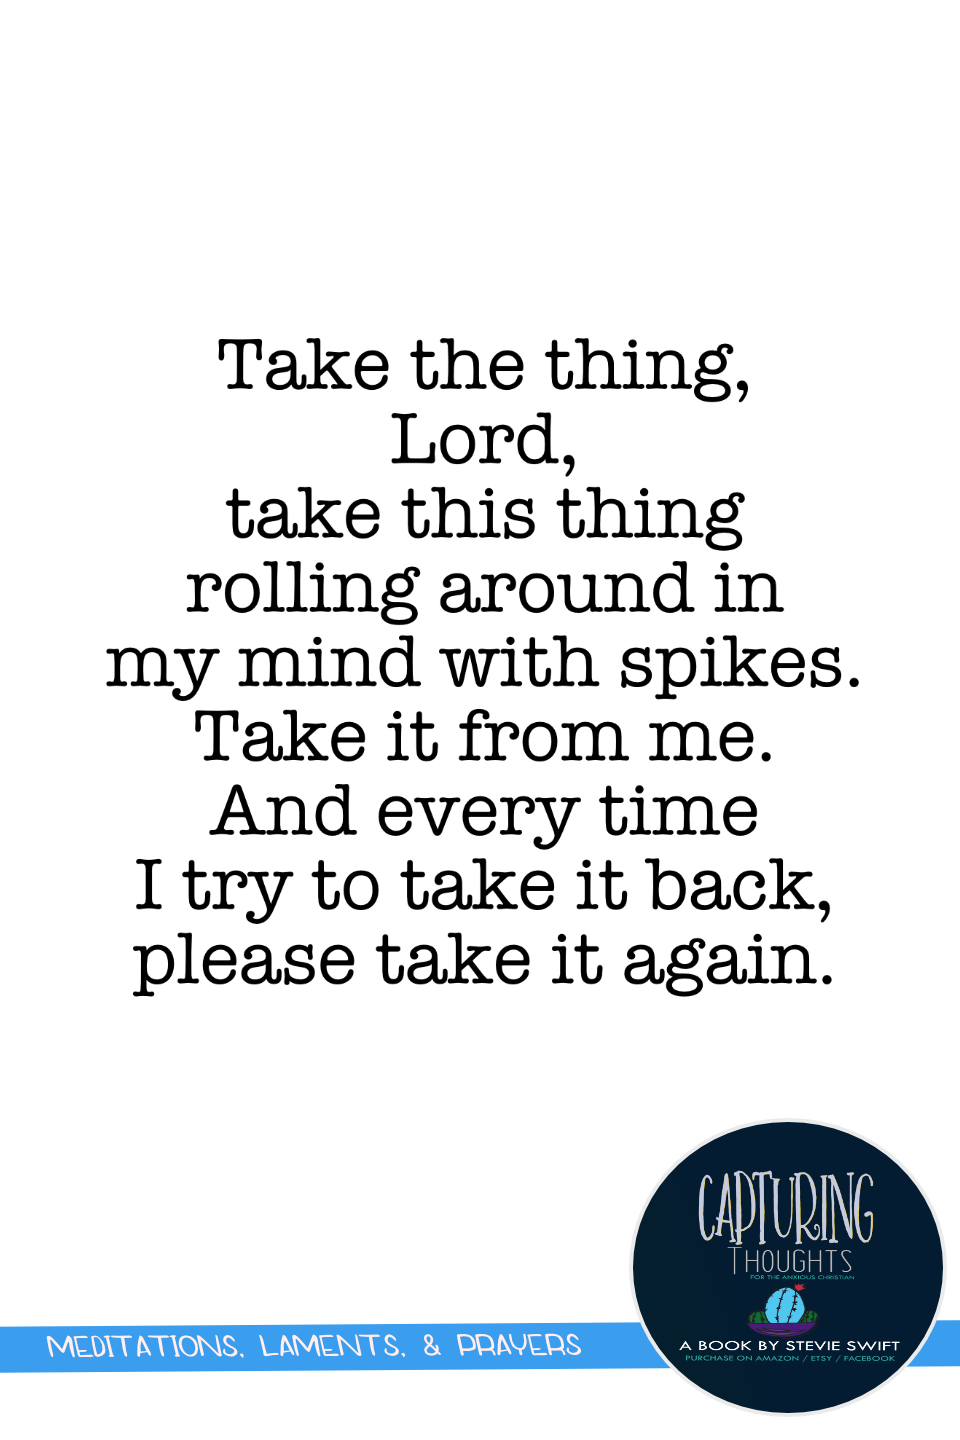 take the thing lord. take this thing rolling around in my mind with spokes. take it from me. and every time i try to take it back please take it again.